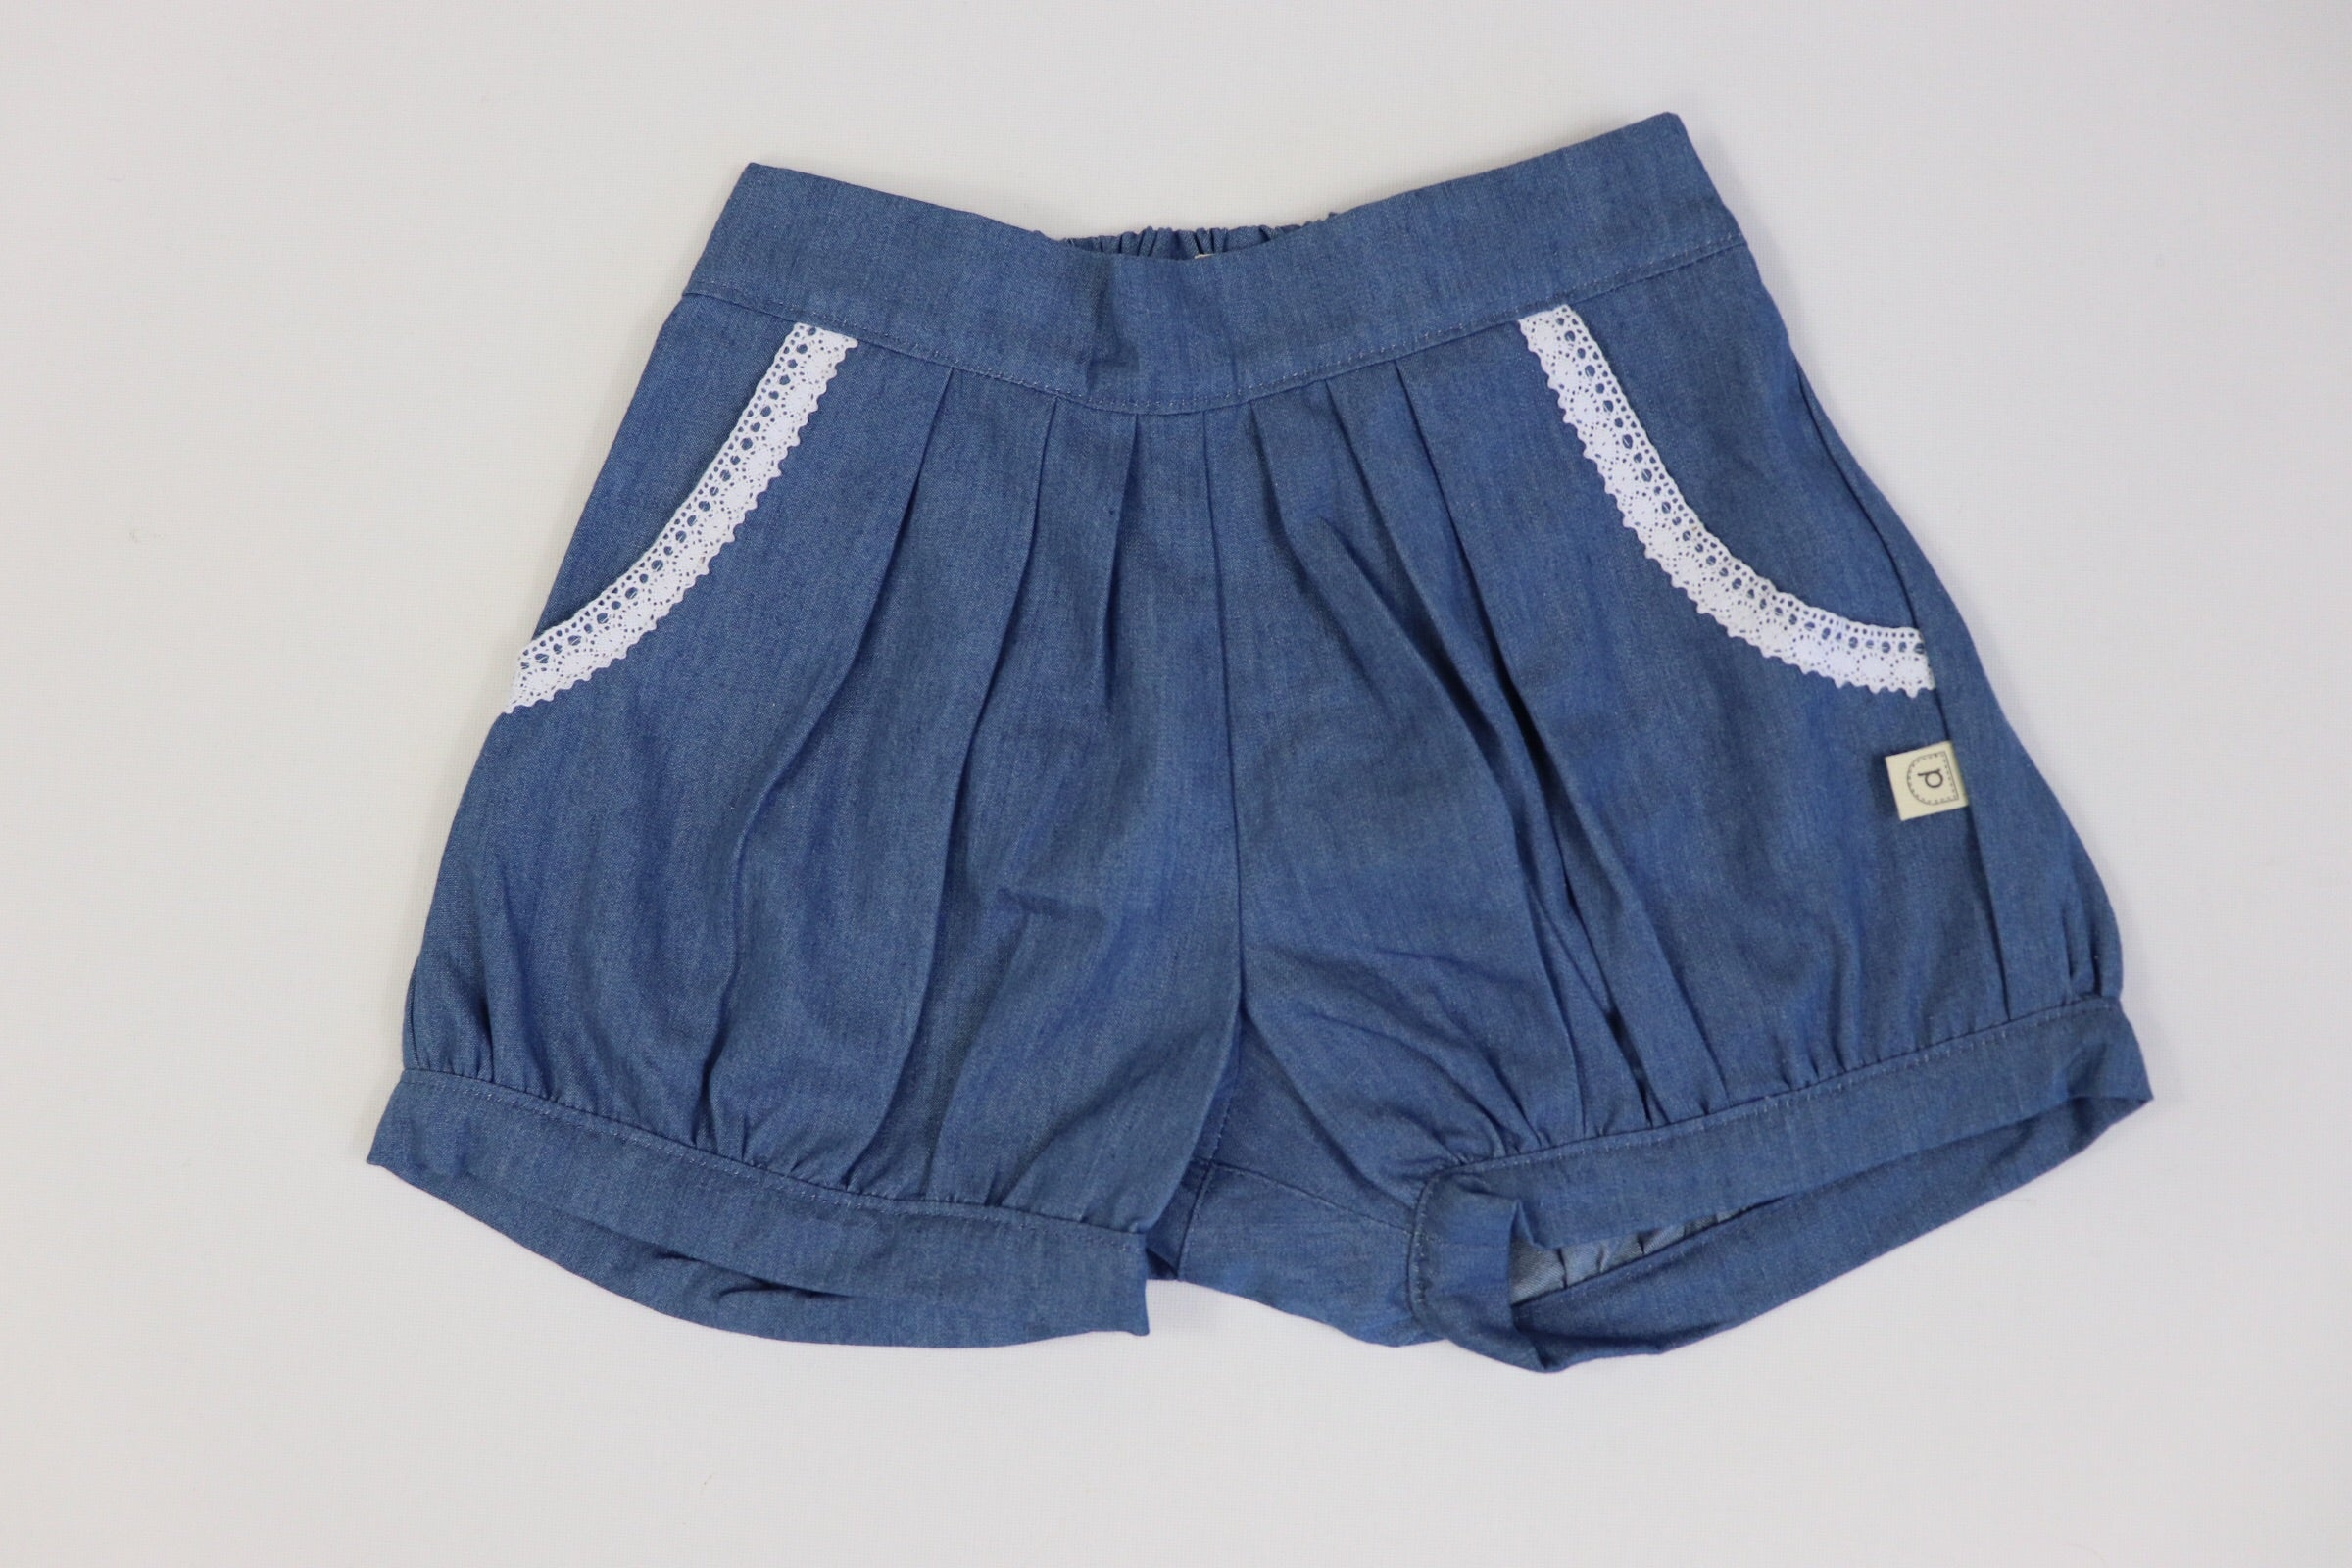 Poche Pleated Shorts - CHAMBRAY DENIM